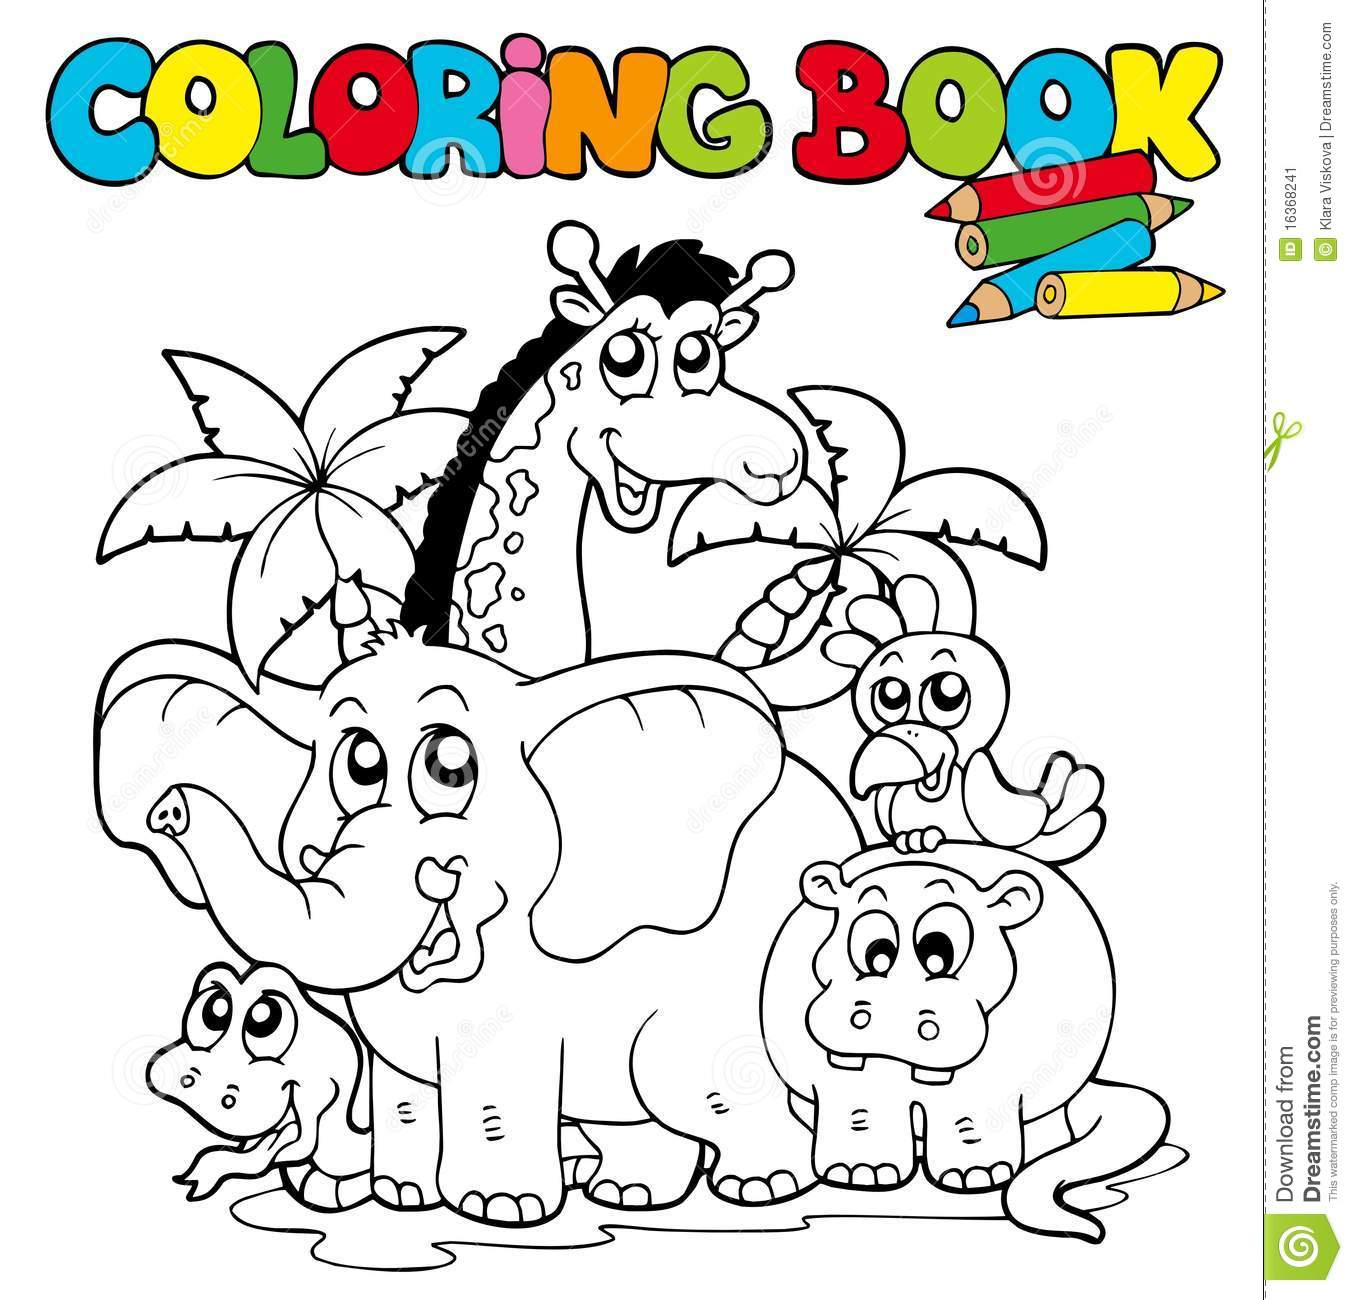 More Similar Stock Images Of Coloring Book With Cute Animals 1